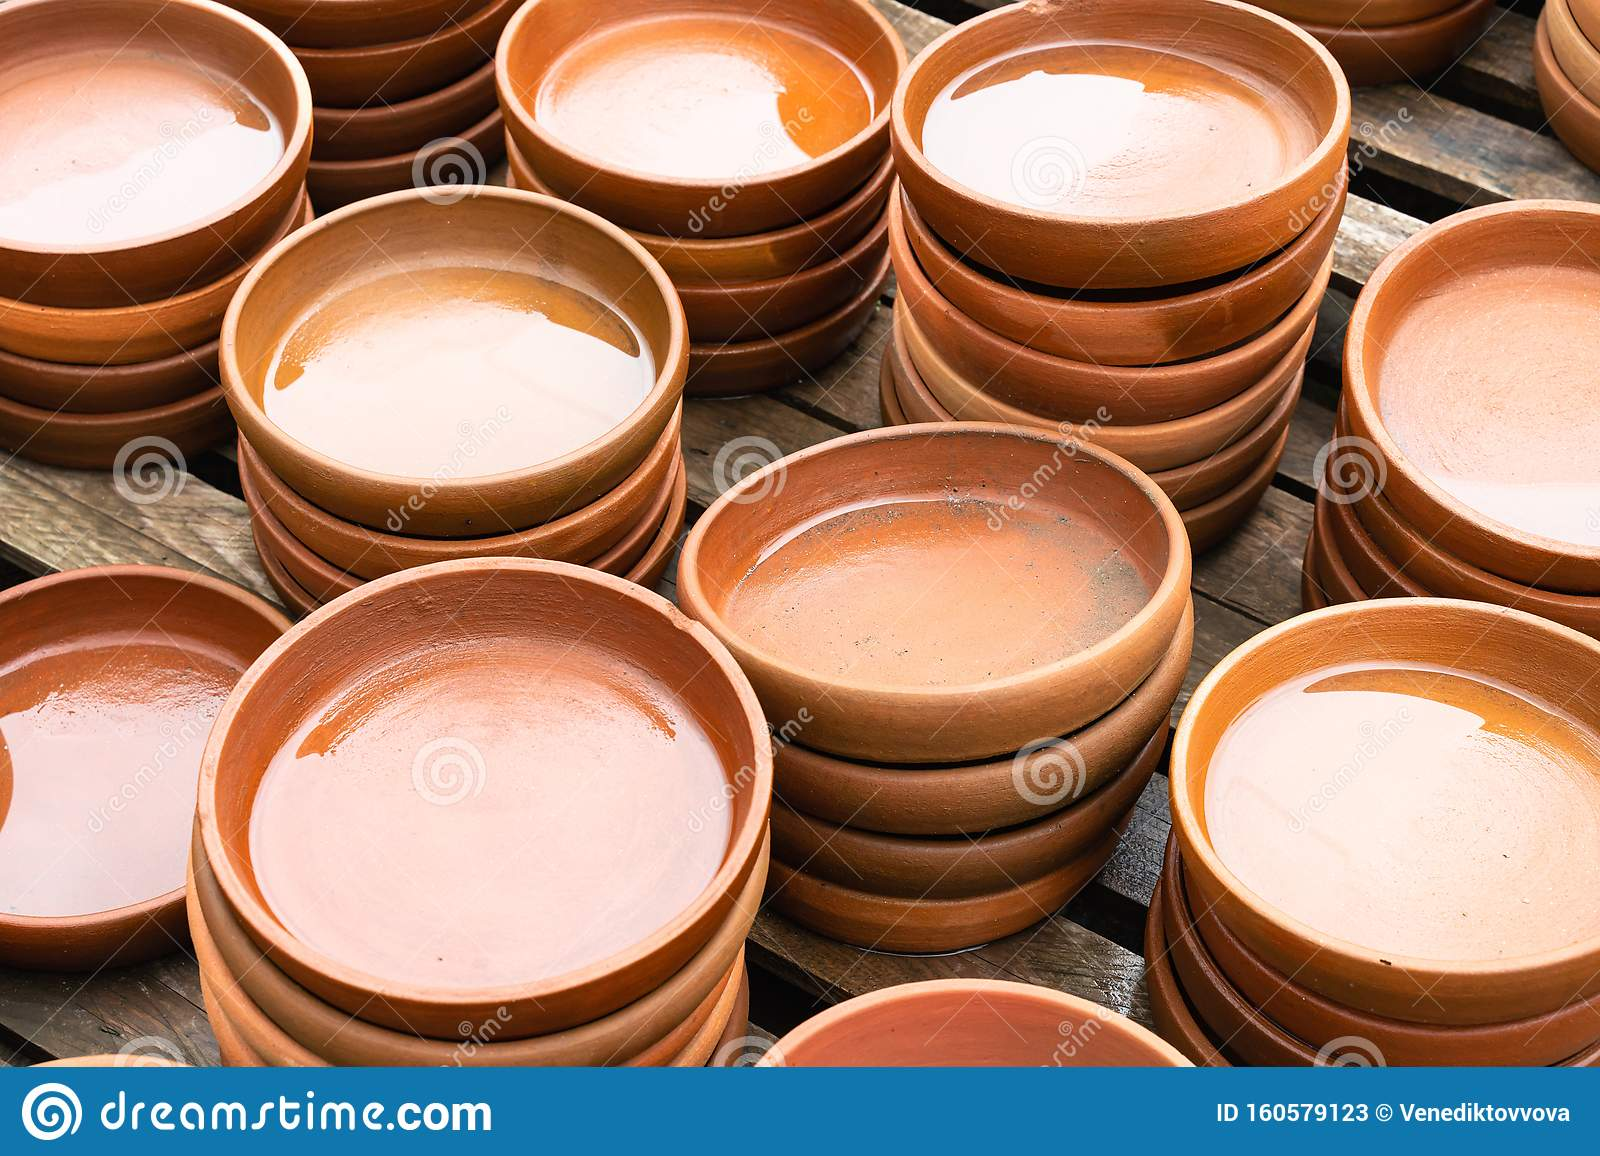 Many Utensils Are Made Of Clay Pottery And Handmade Close Up Stock Image Image Of Brown Souvenir 160579123